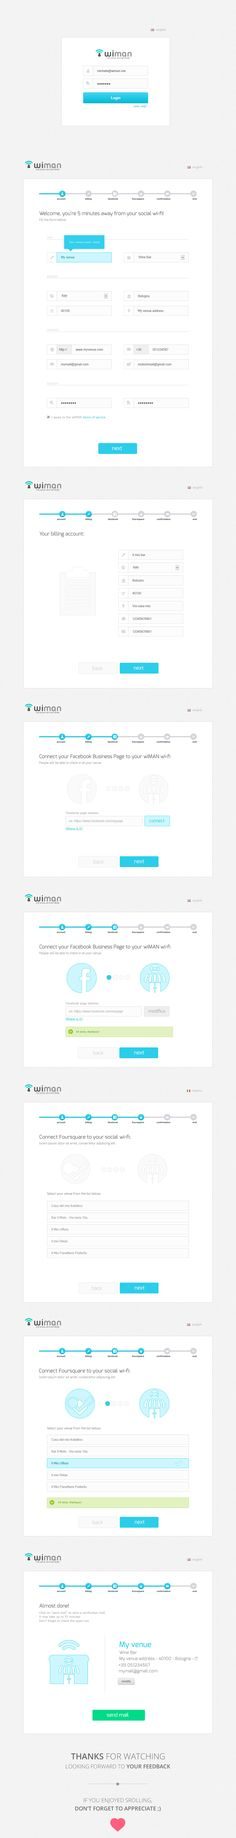 Wiman registration wizard on Behance